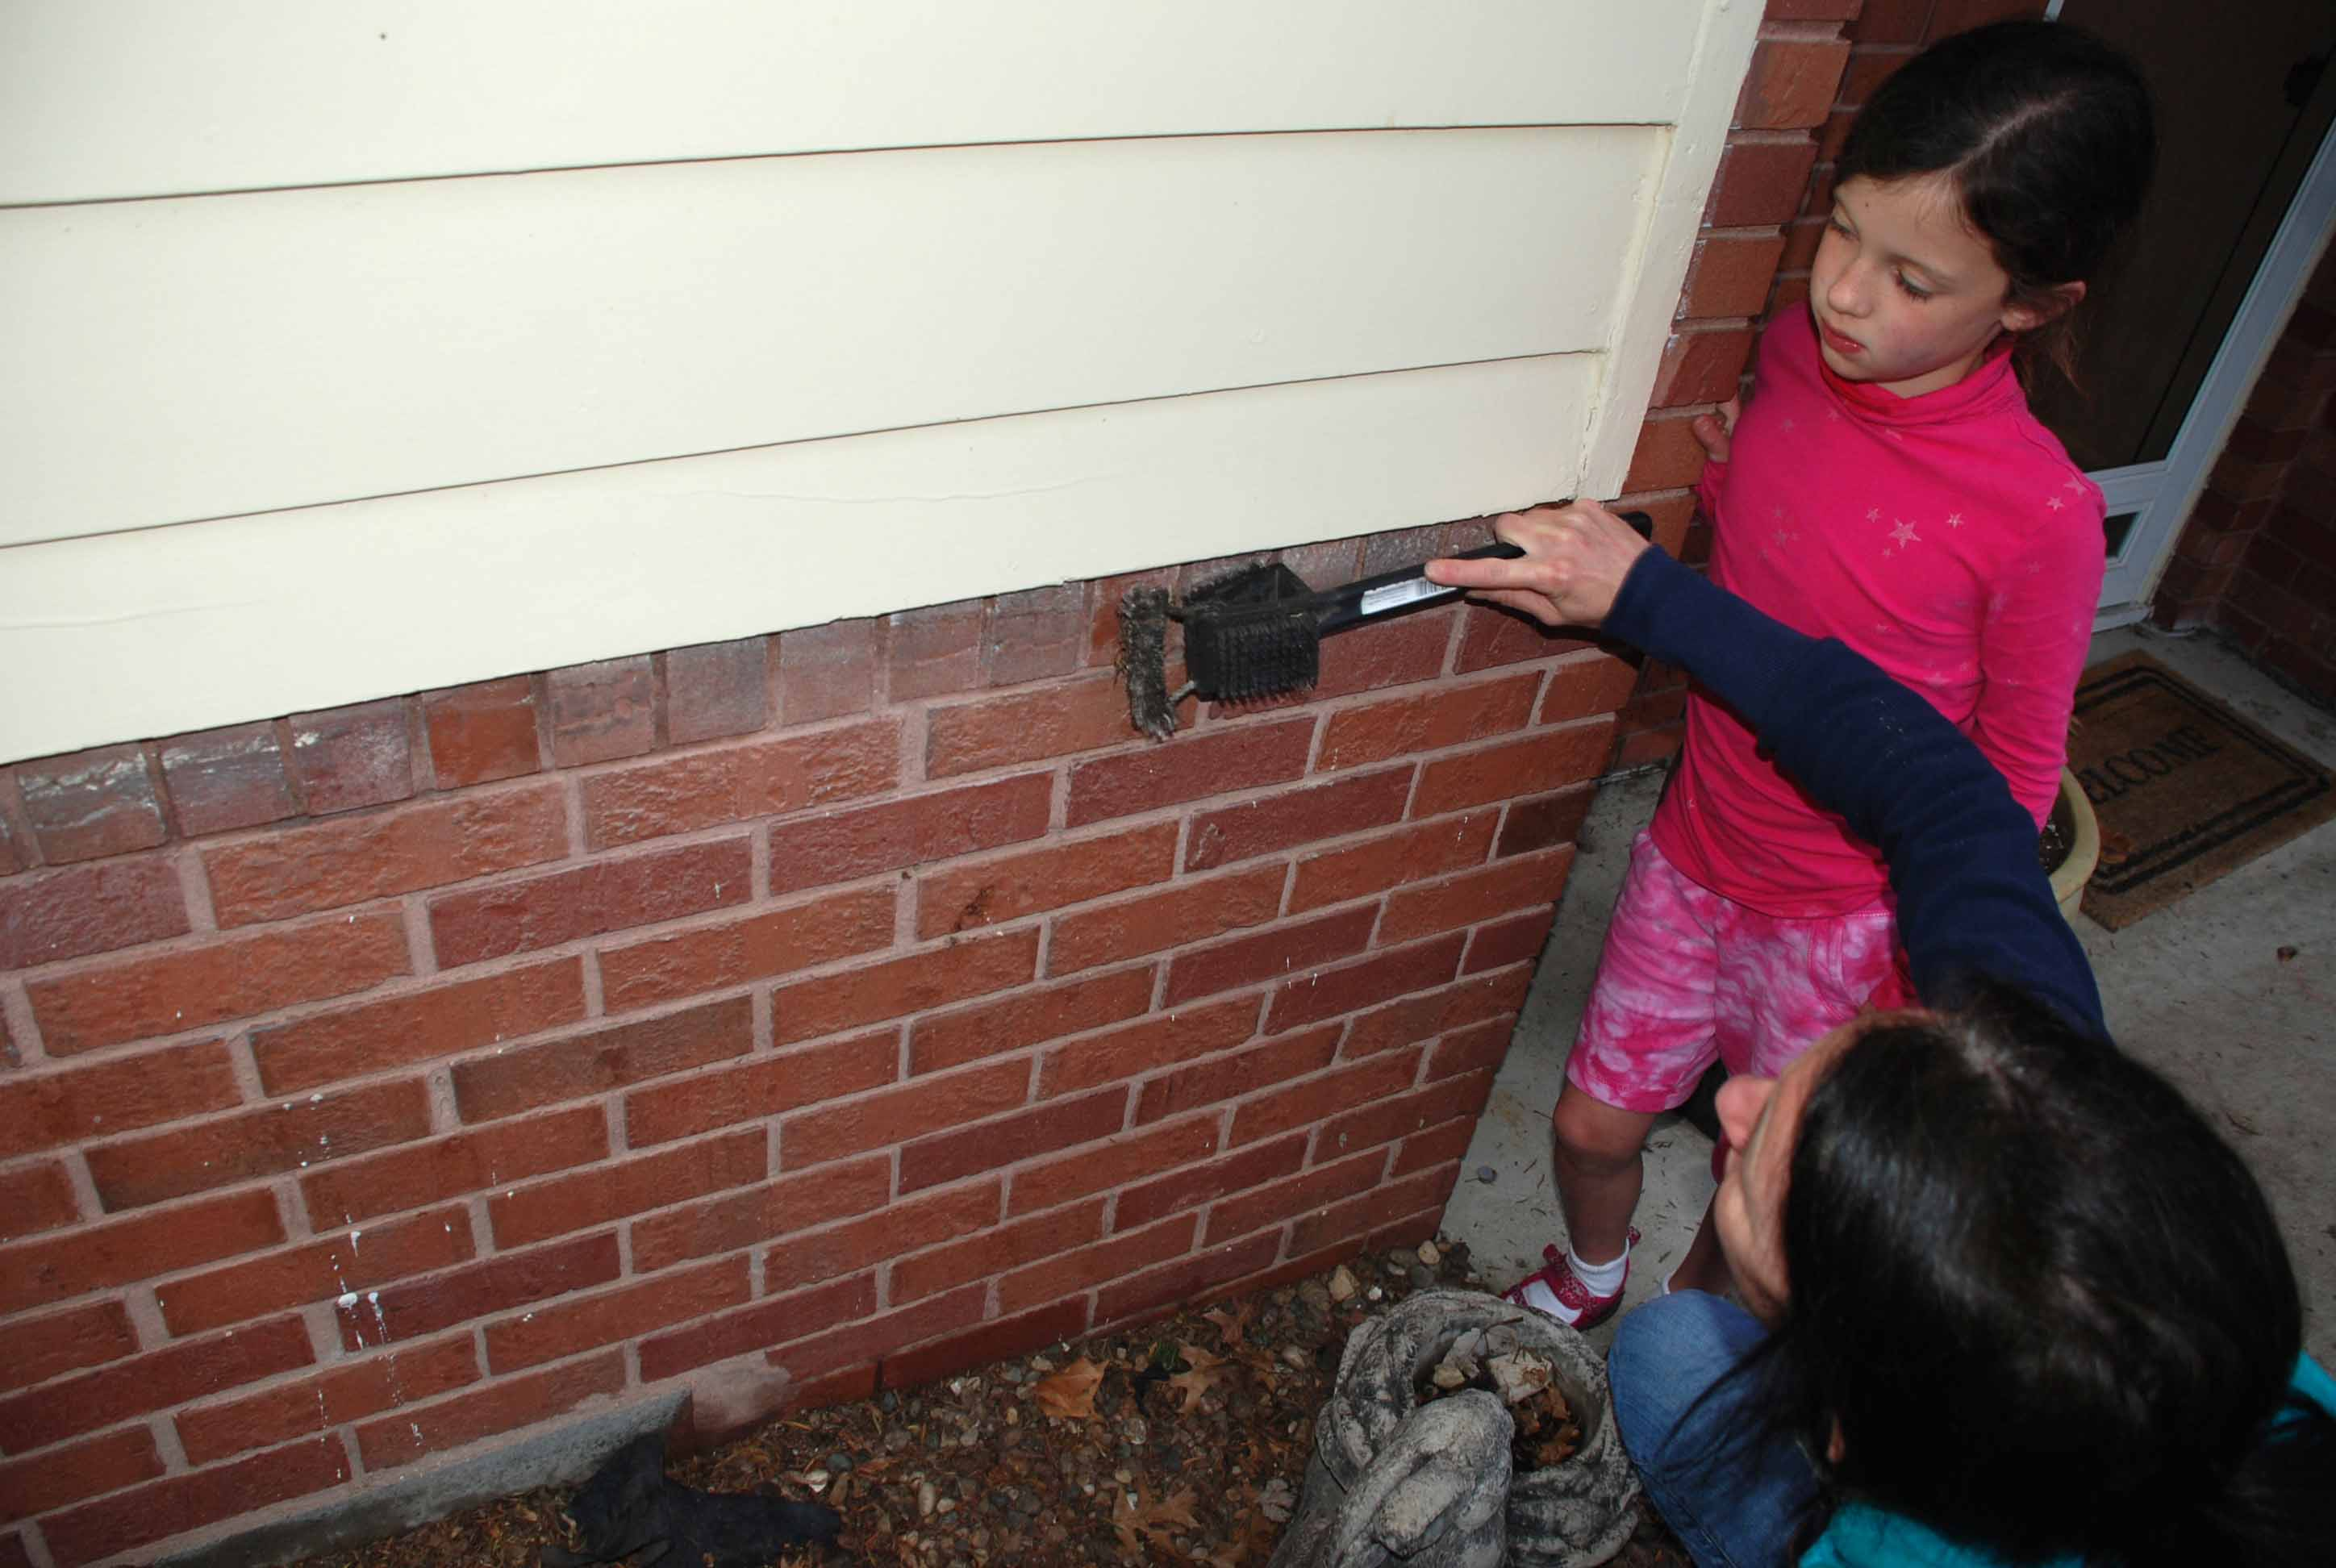 Removing Paint From Brick Outside 5 How to Remove Paint from